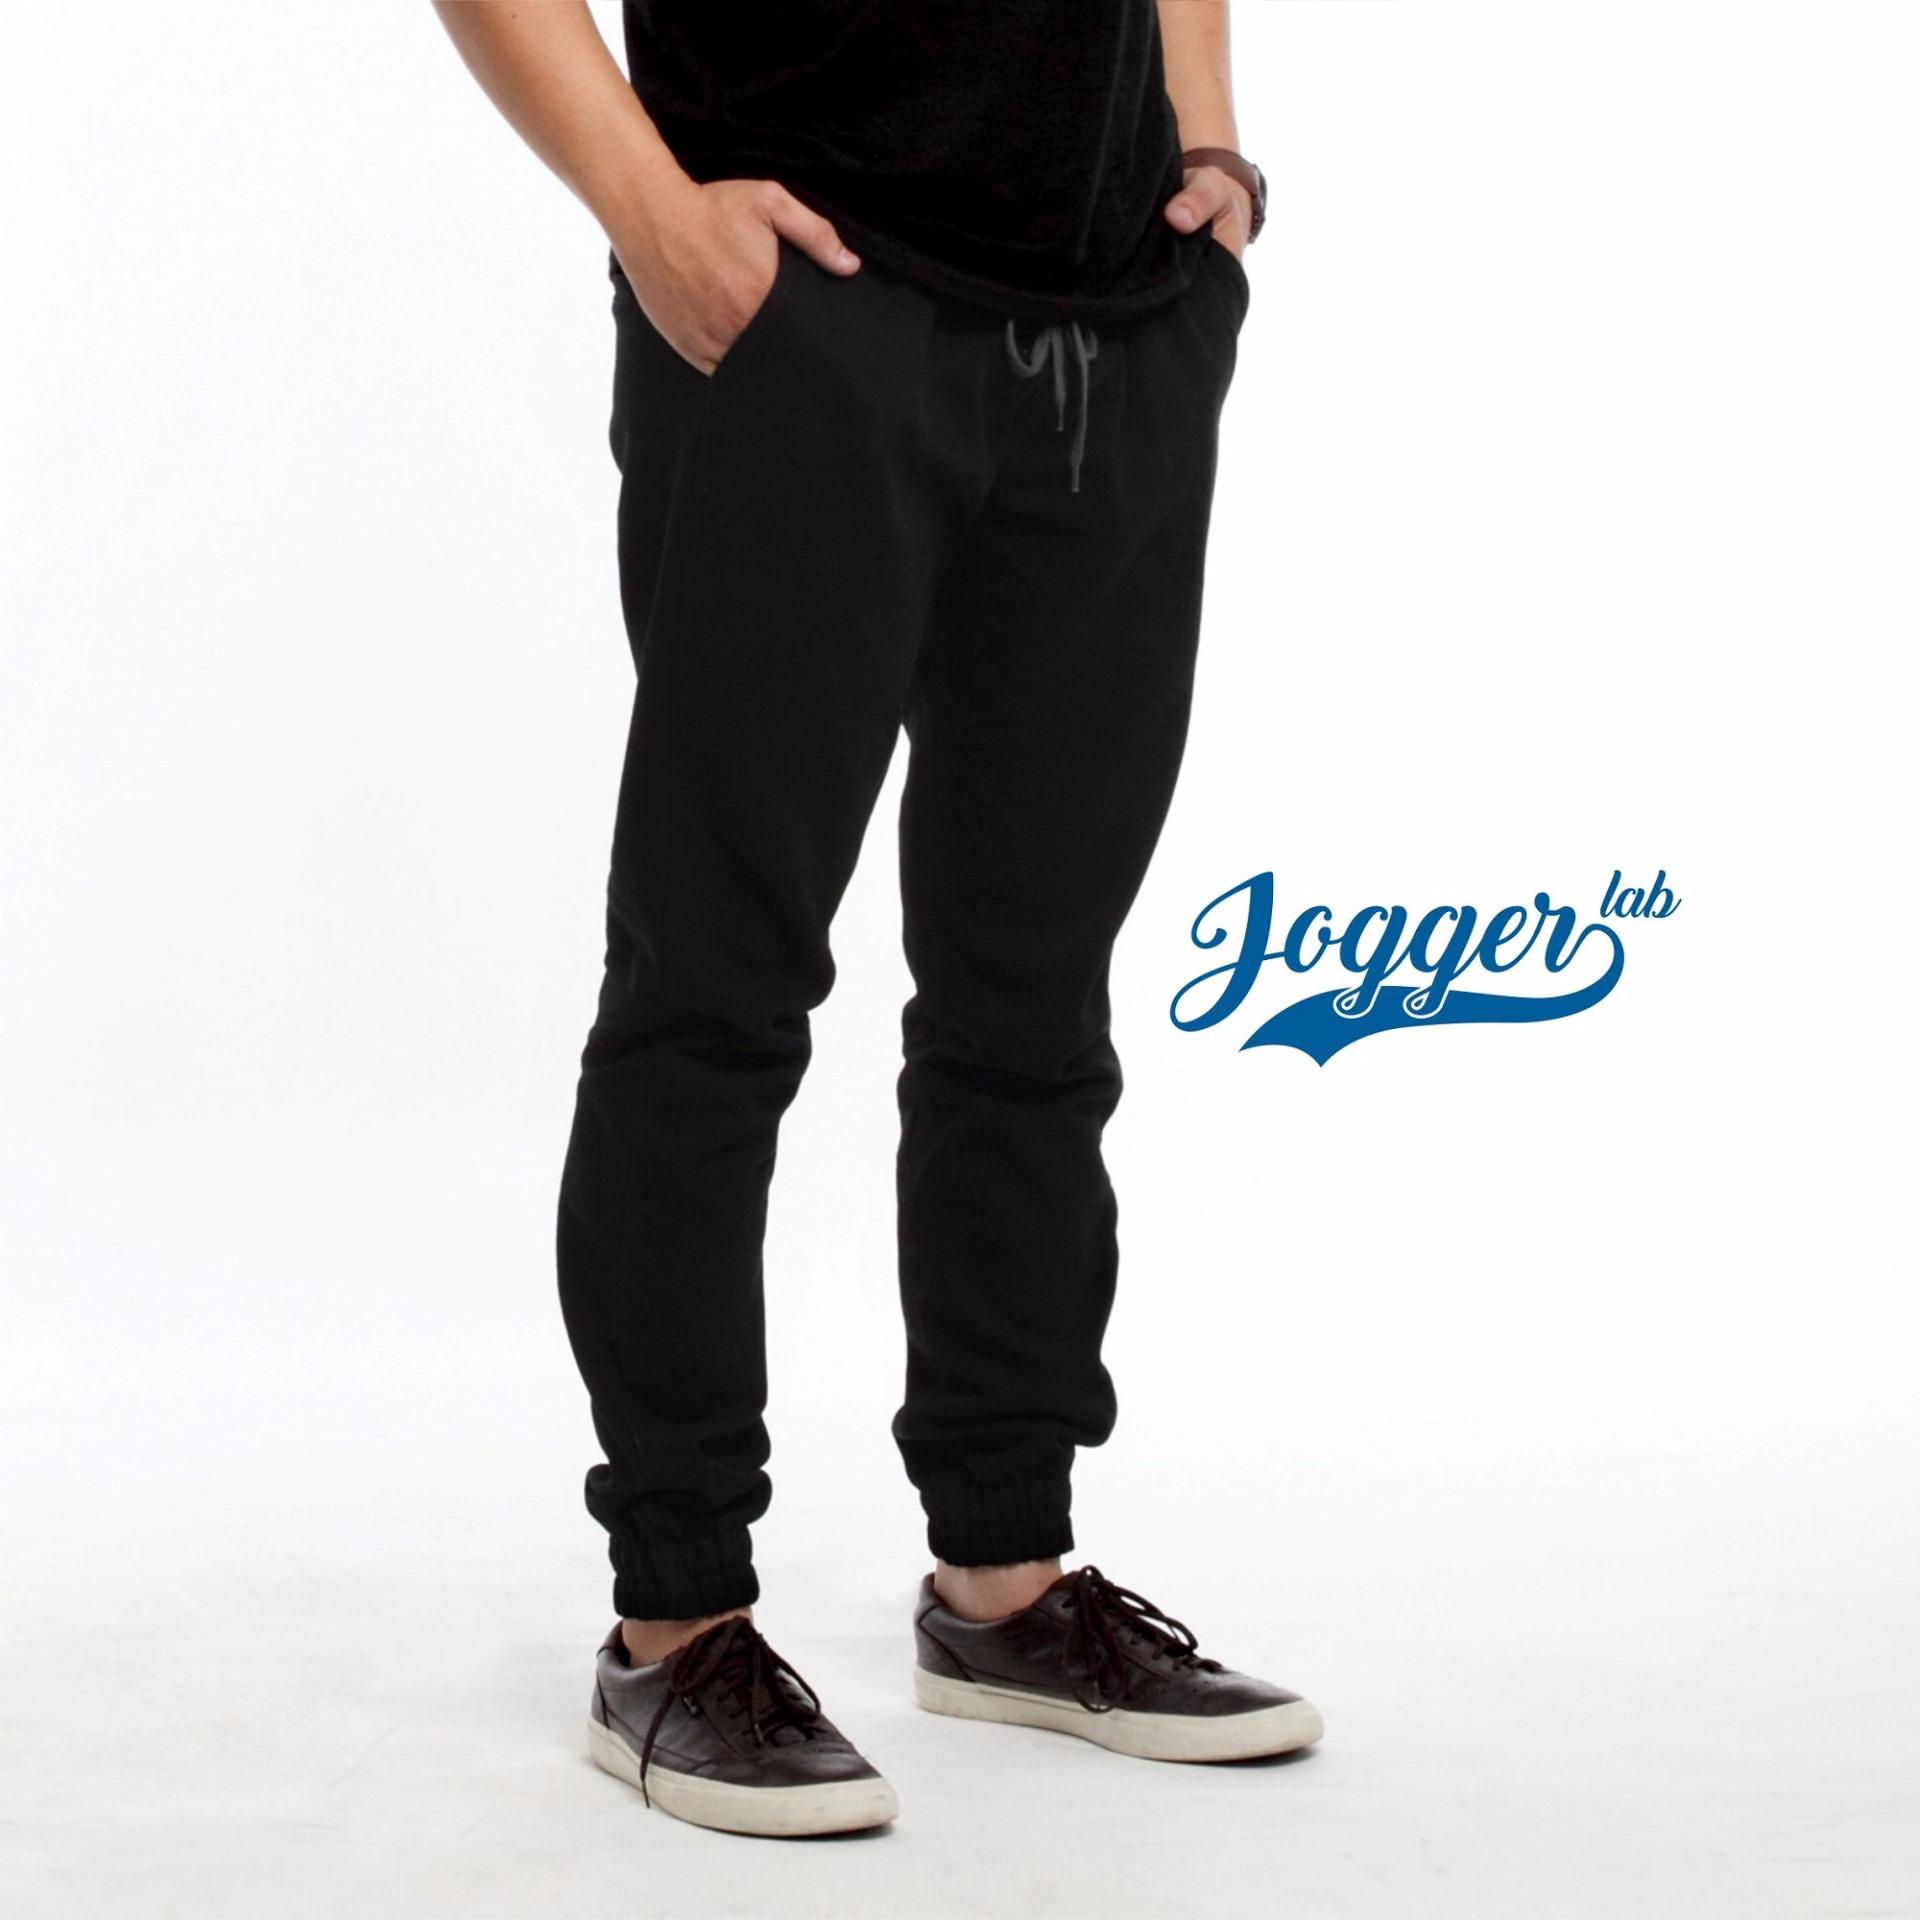 Harga Jogger Lab Jogger Jeans Full Black New